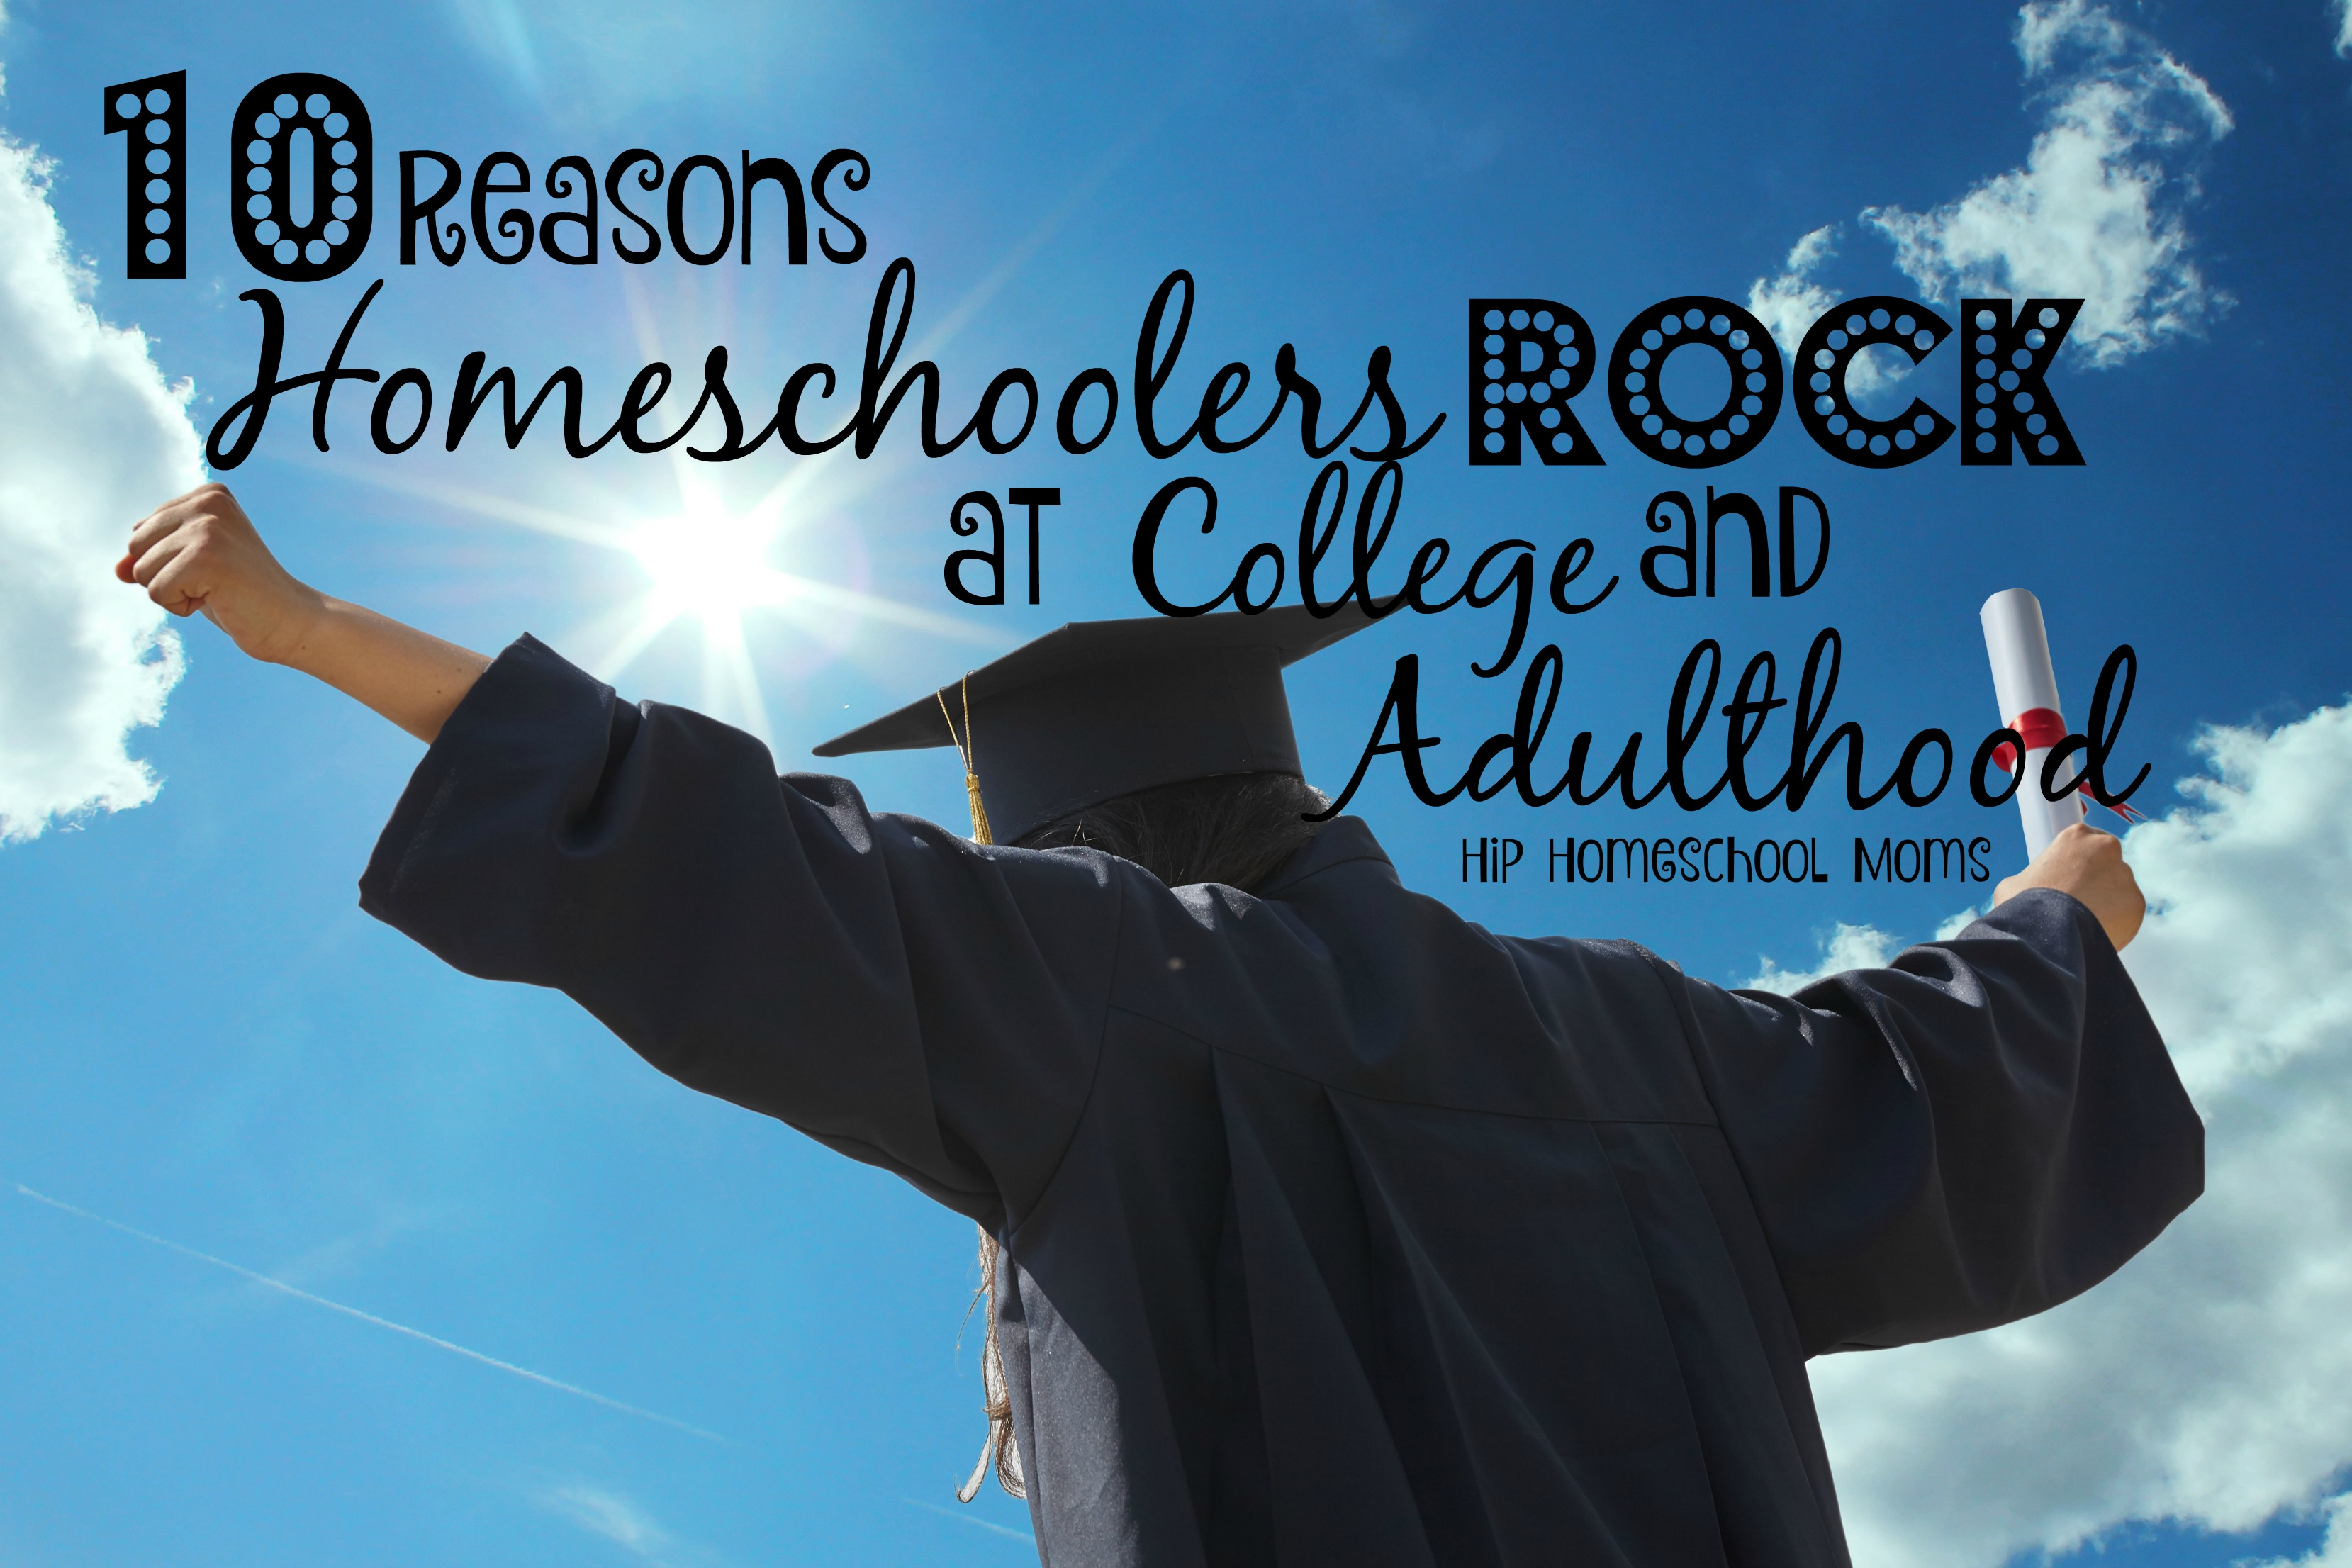 10 Reasons Homeschoolers Rock at College and Adulthood